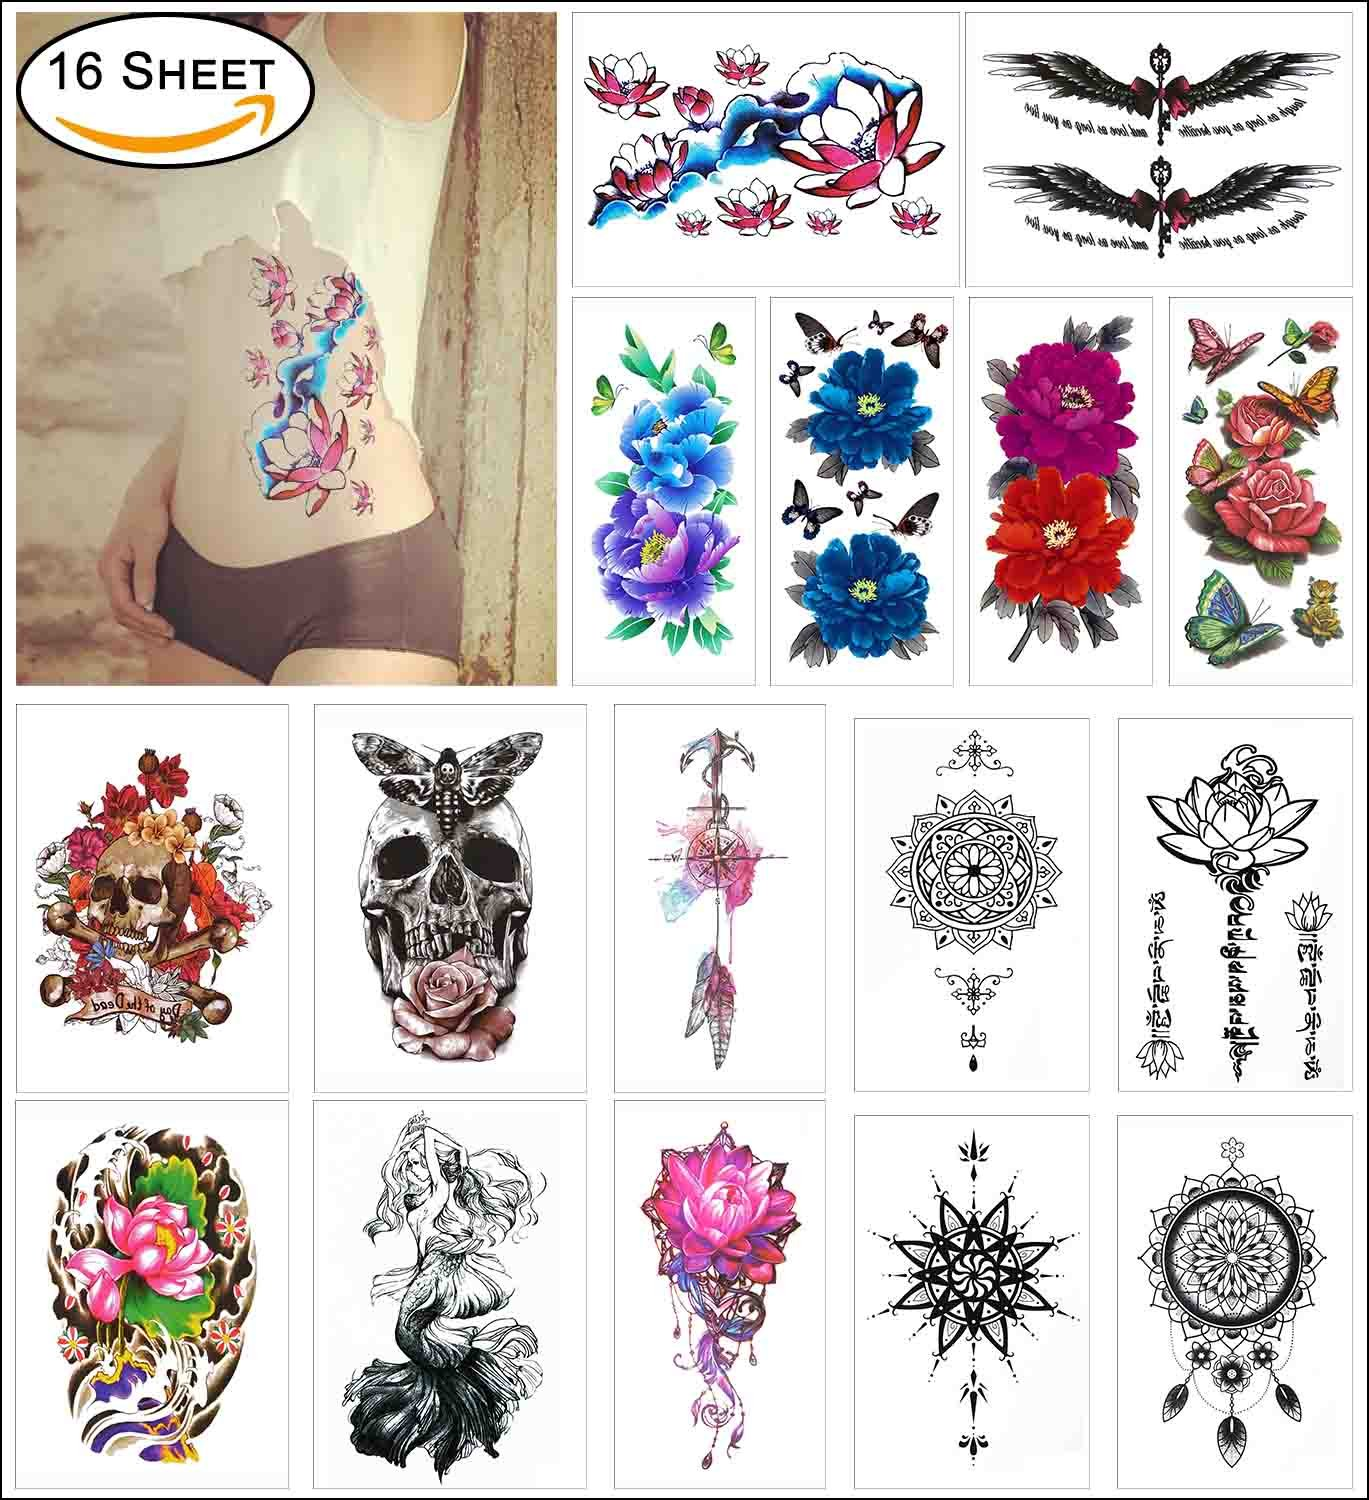 b5cd97a71 Get Quotations · COKOHAPPY 16 Sheets Temporary Tattoo for Girl for Women -  Large Body Sticker Flash Tattoo Arm